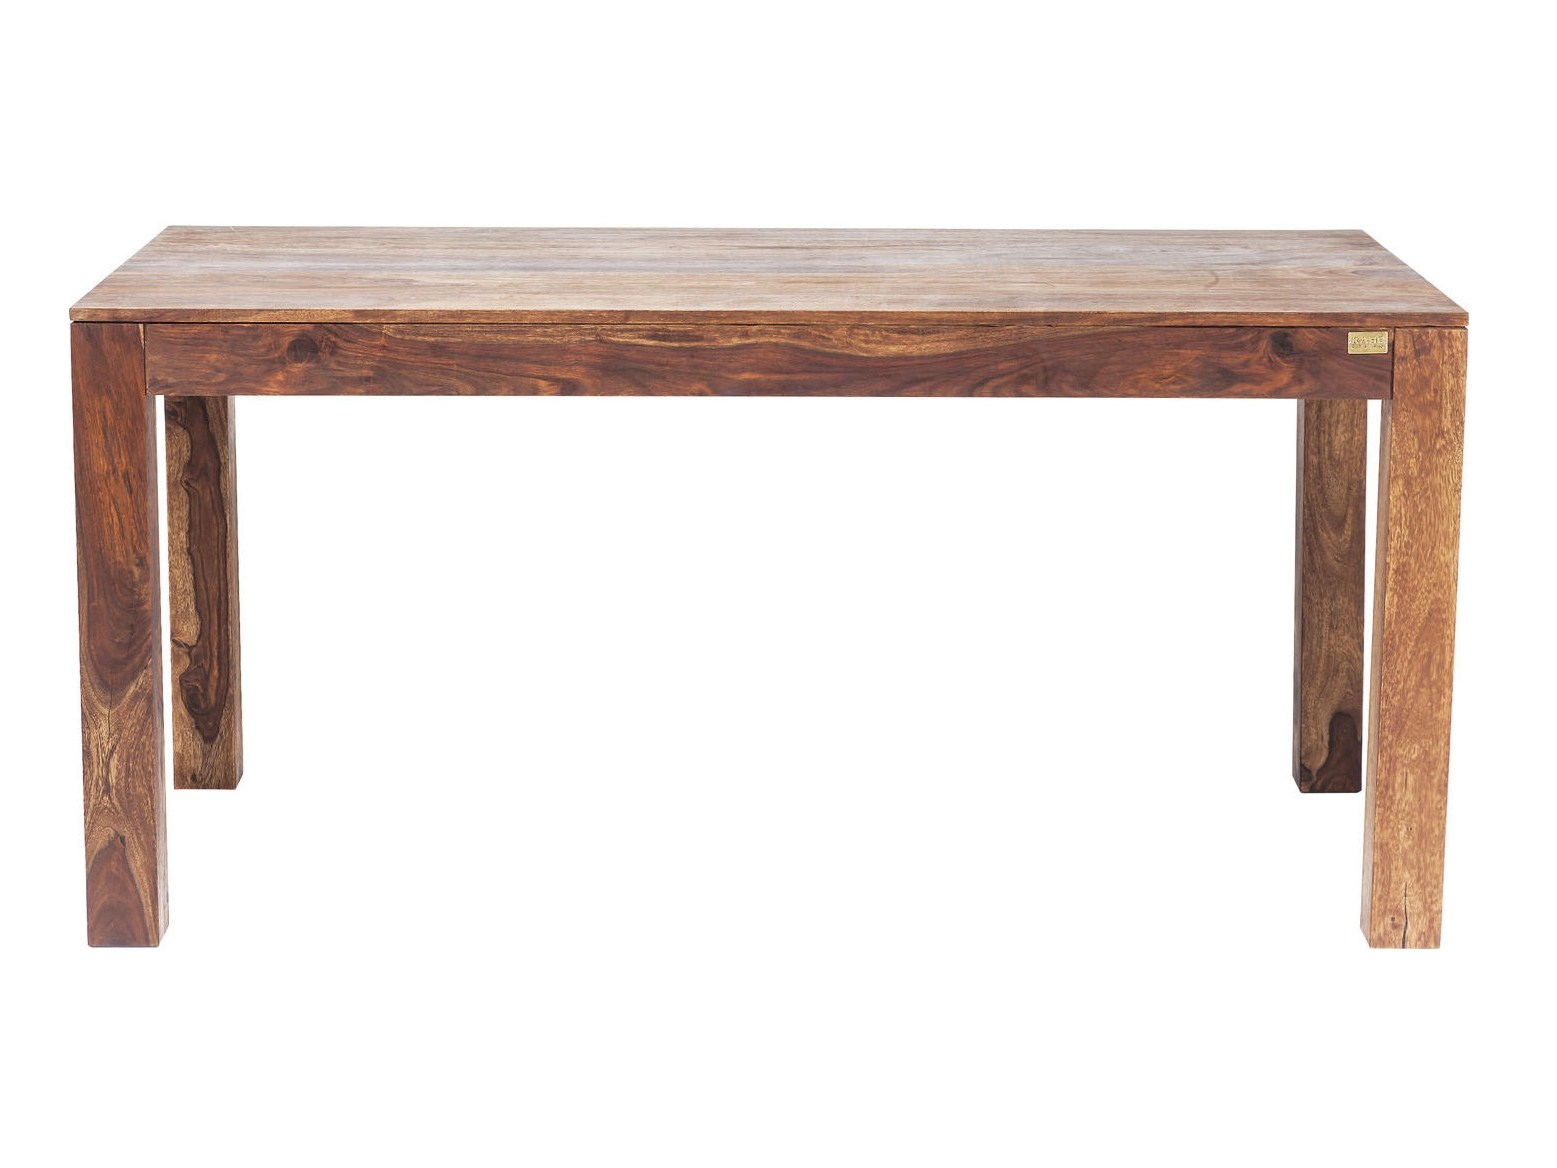 Rectangular wooden dining table authentico by kare design for Wooden dining table designs photos